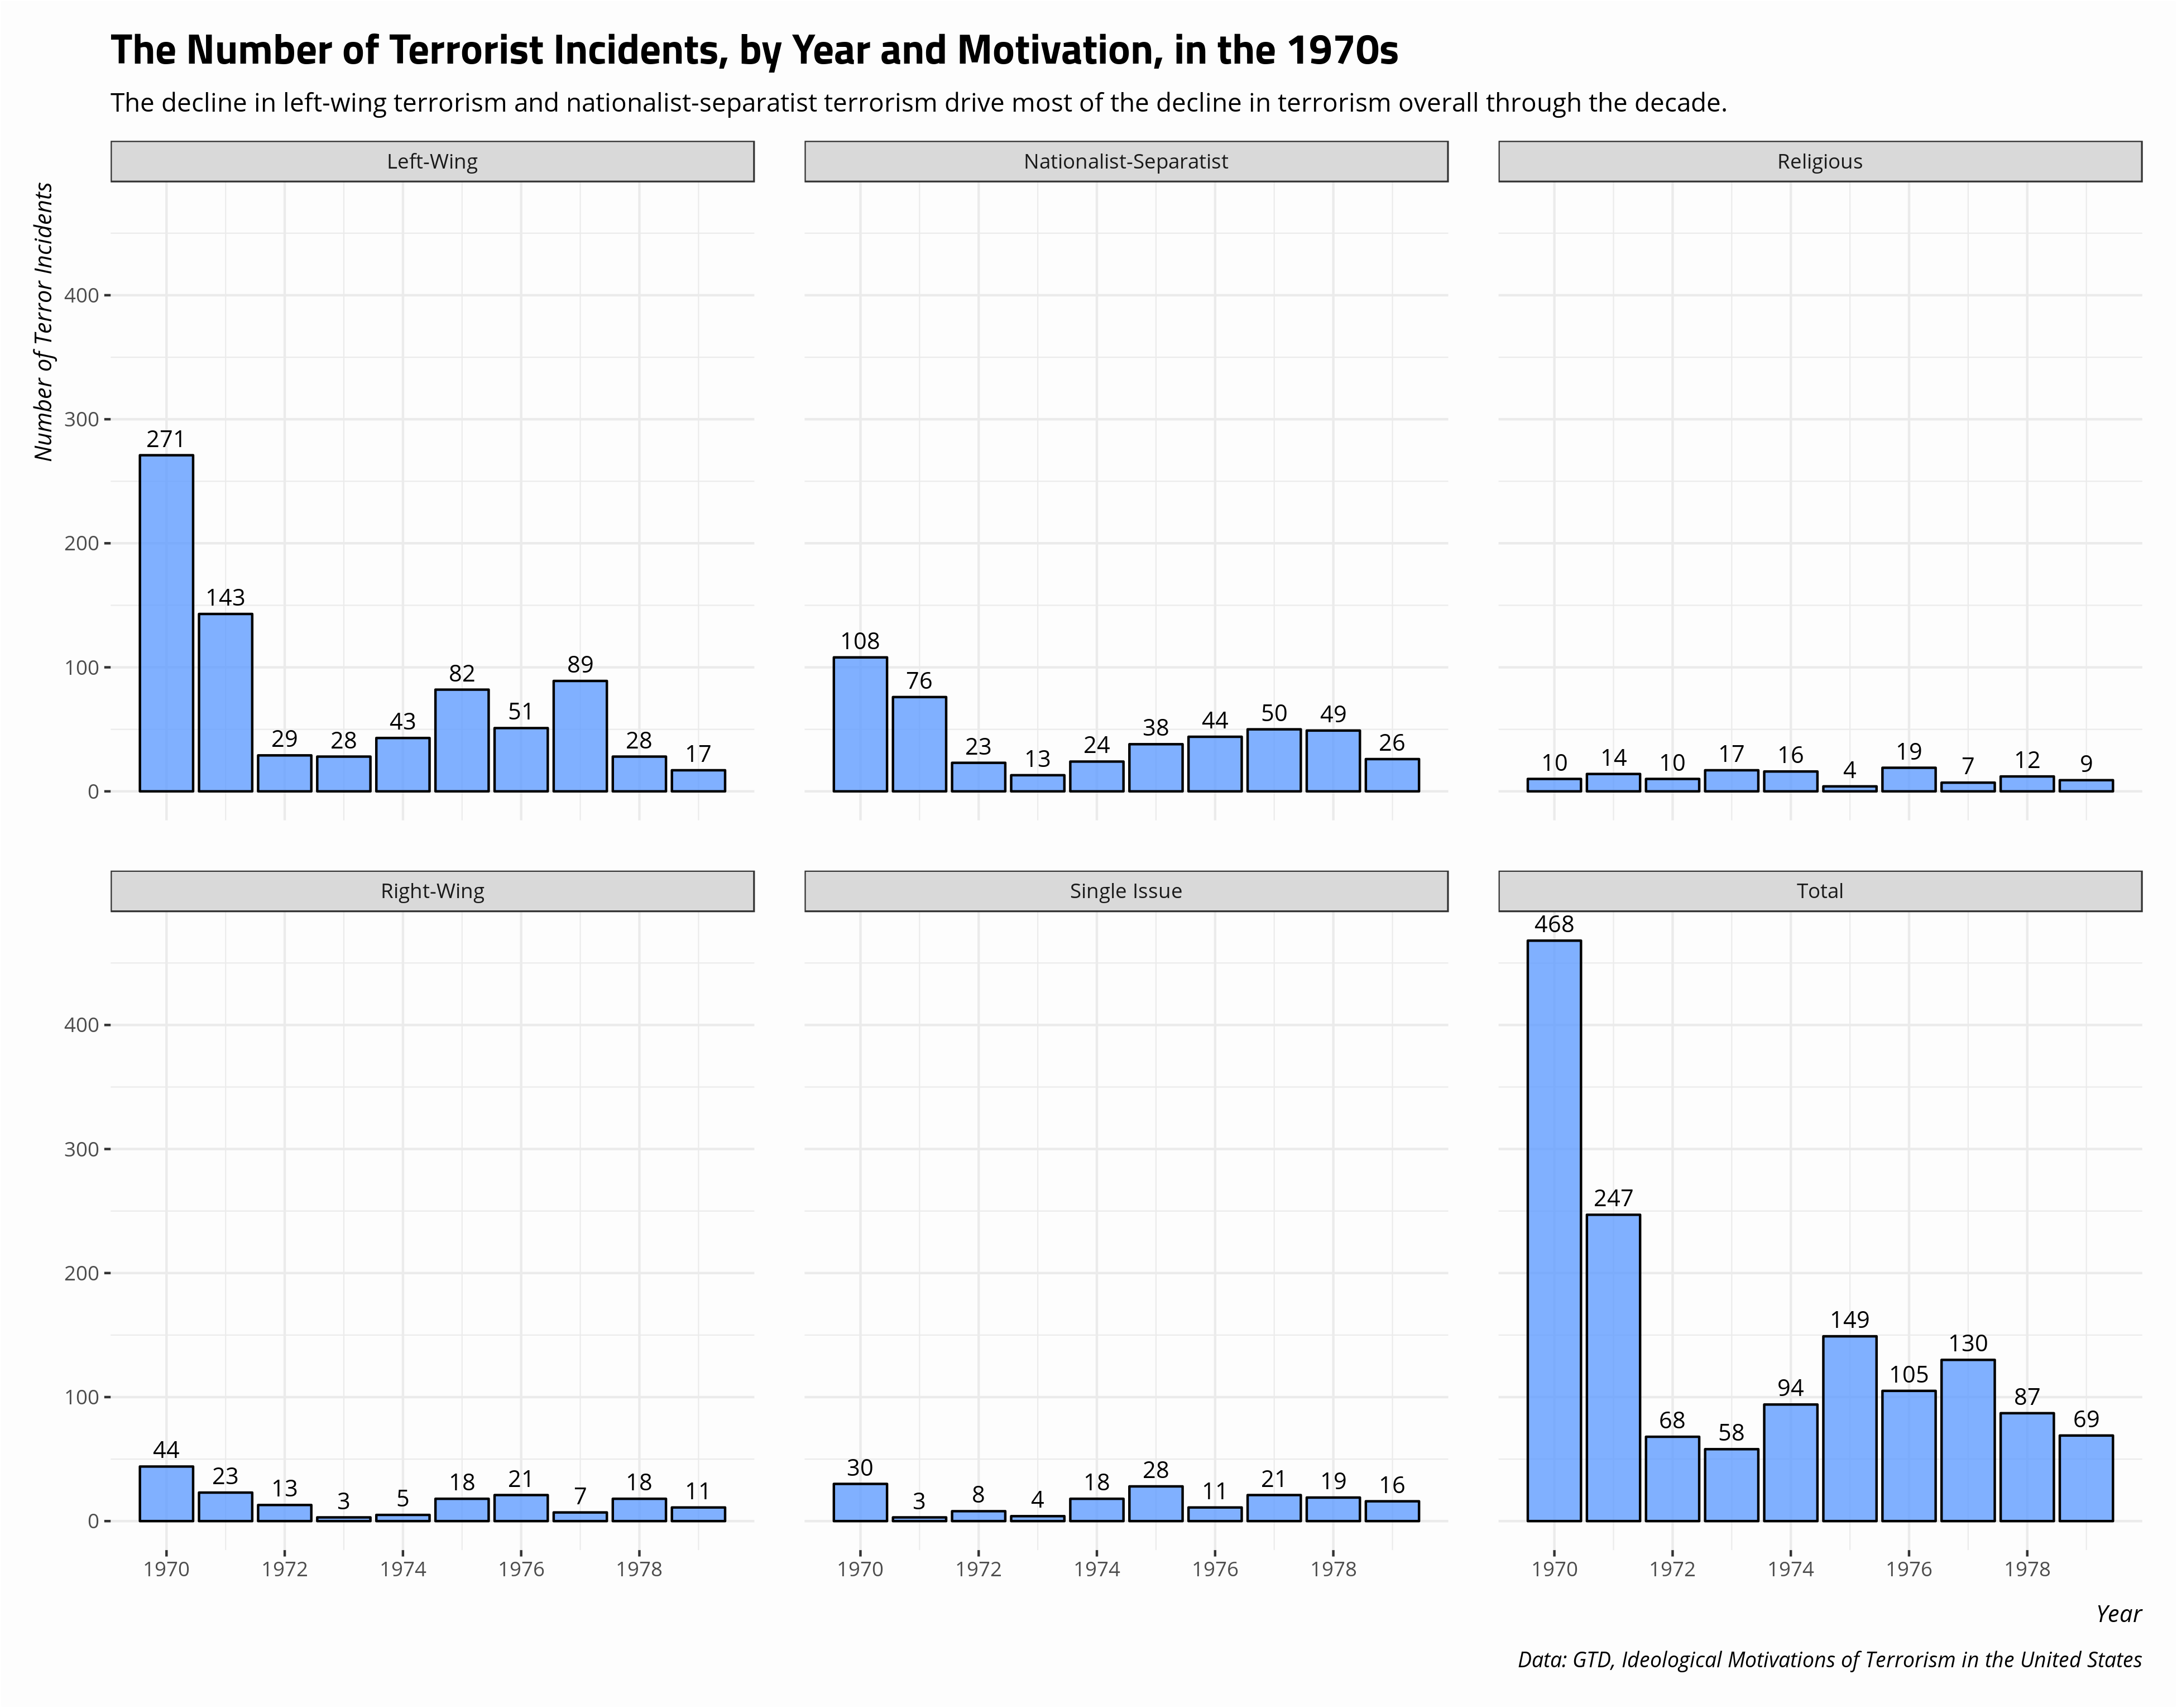 plot of chunk terrorism-incidents-by-year-motivation-1970s